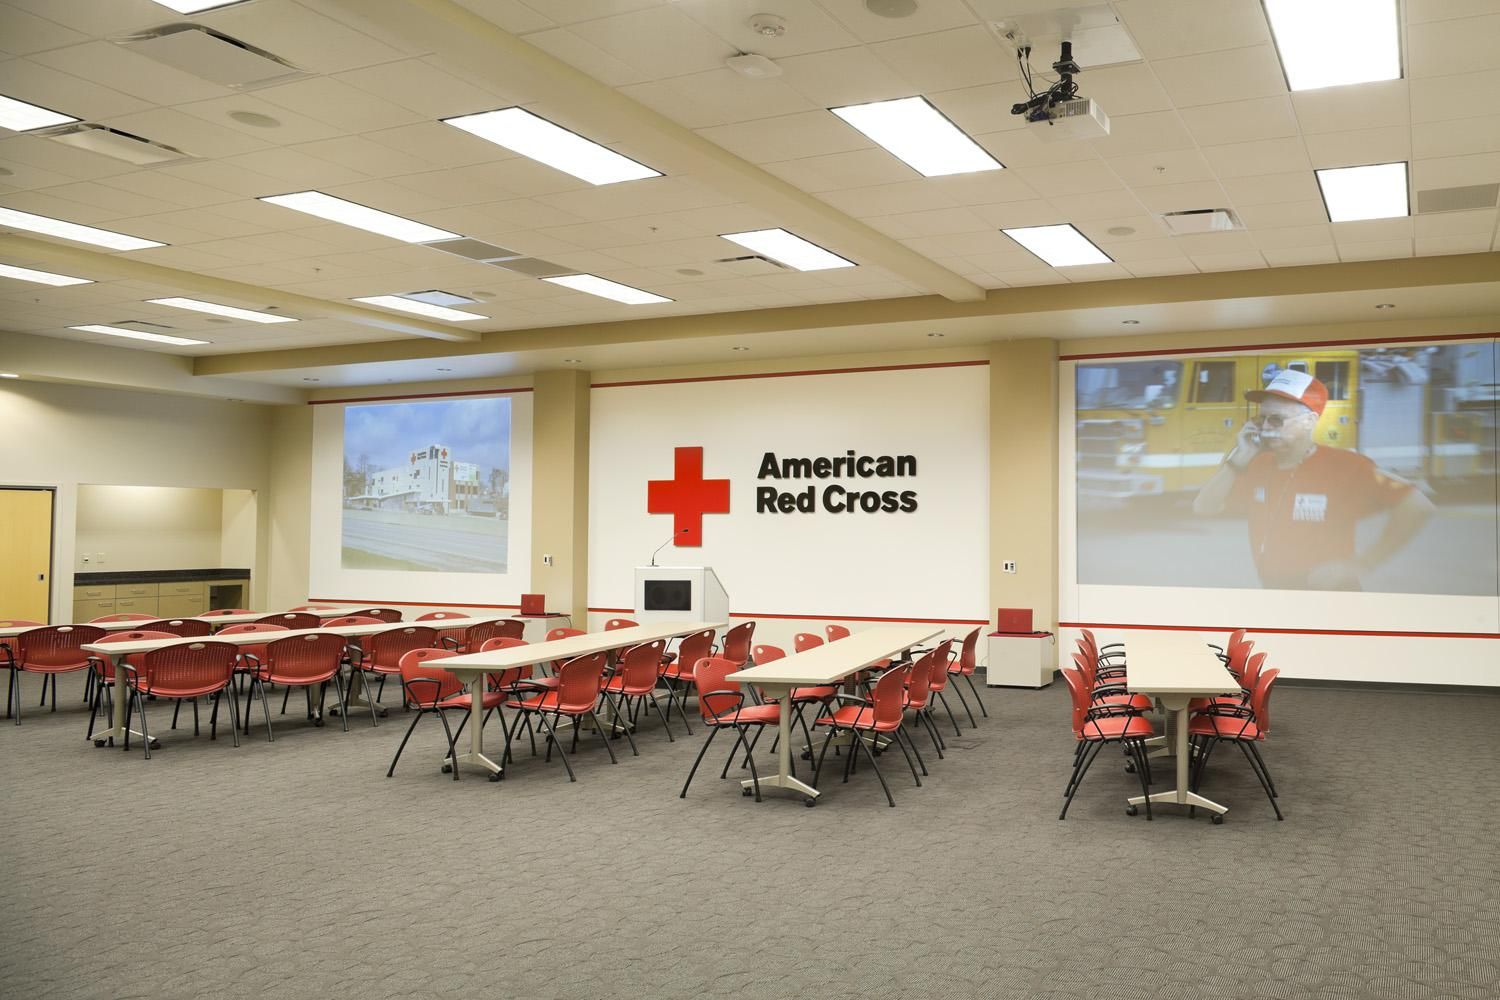 American Red Cross Cincinnati Regional Headquarters